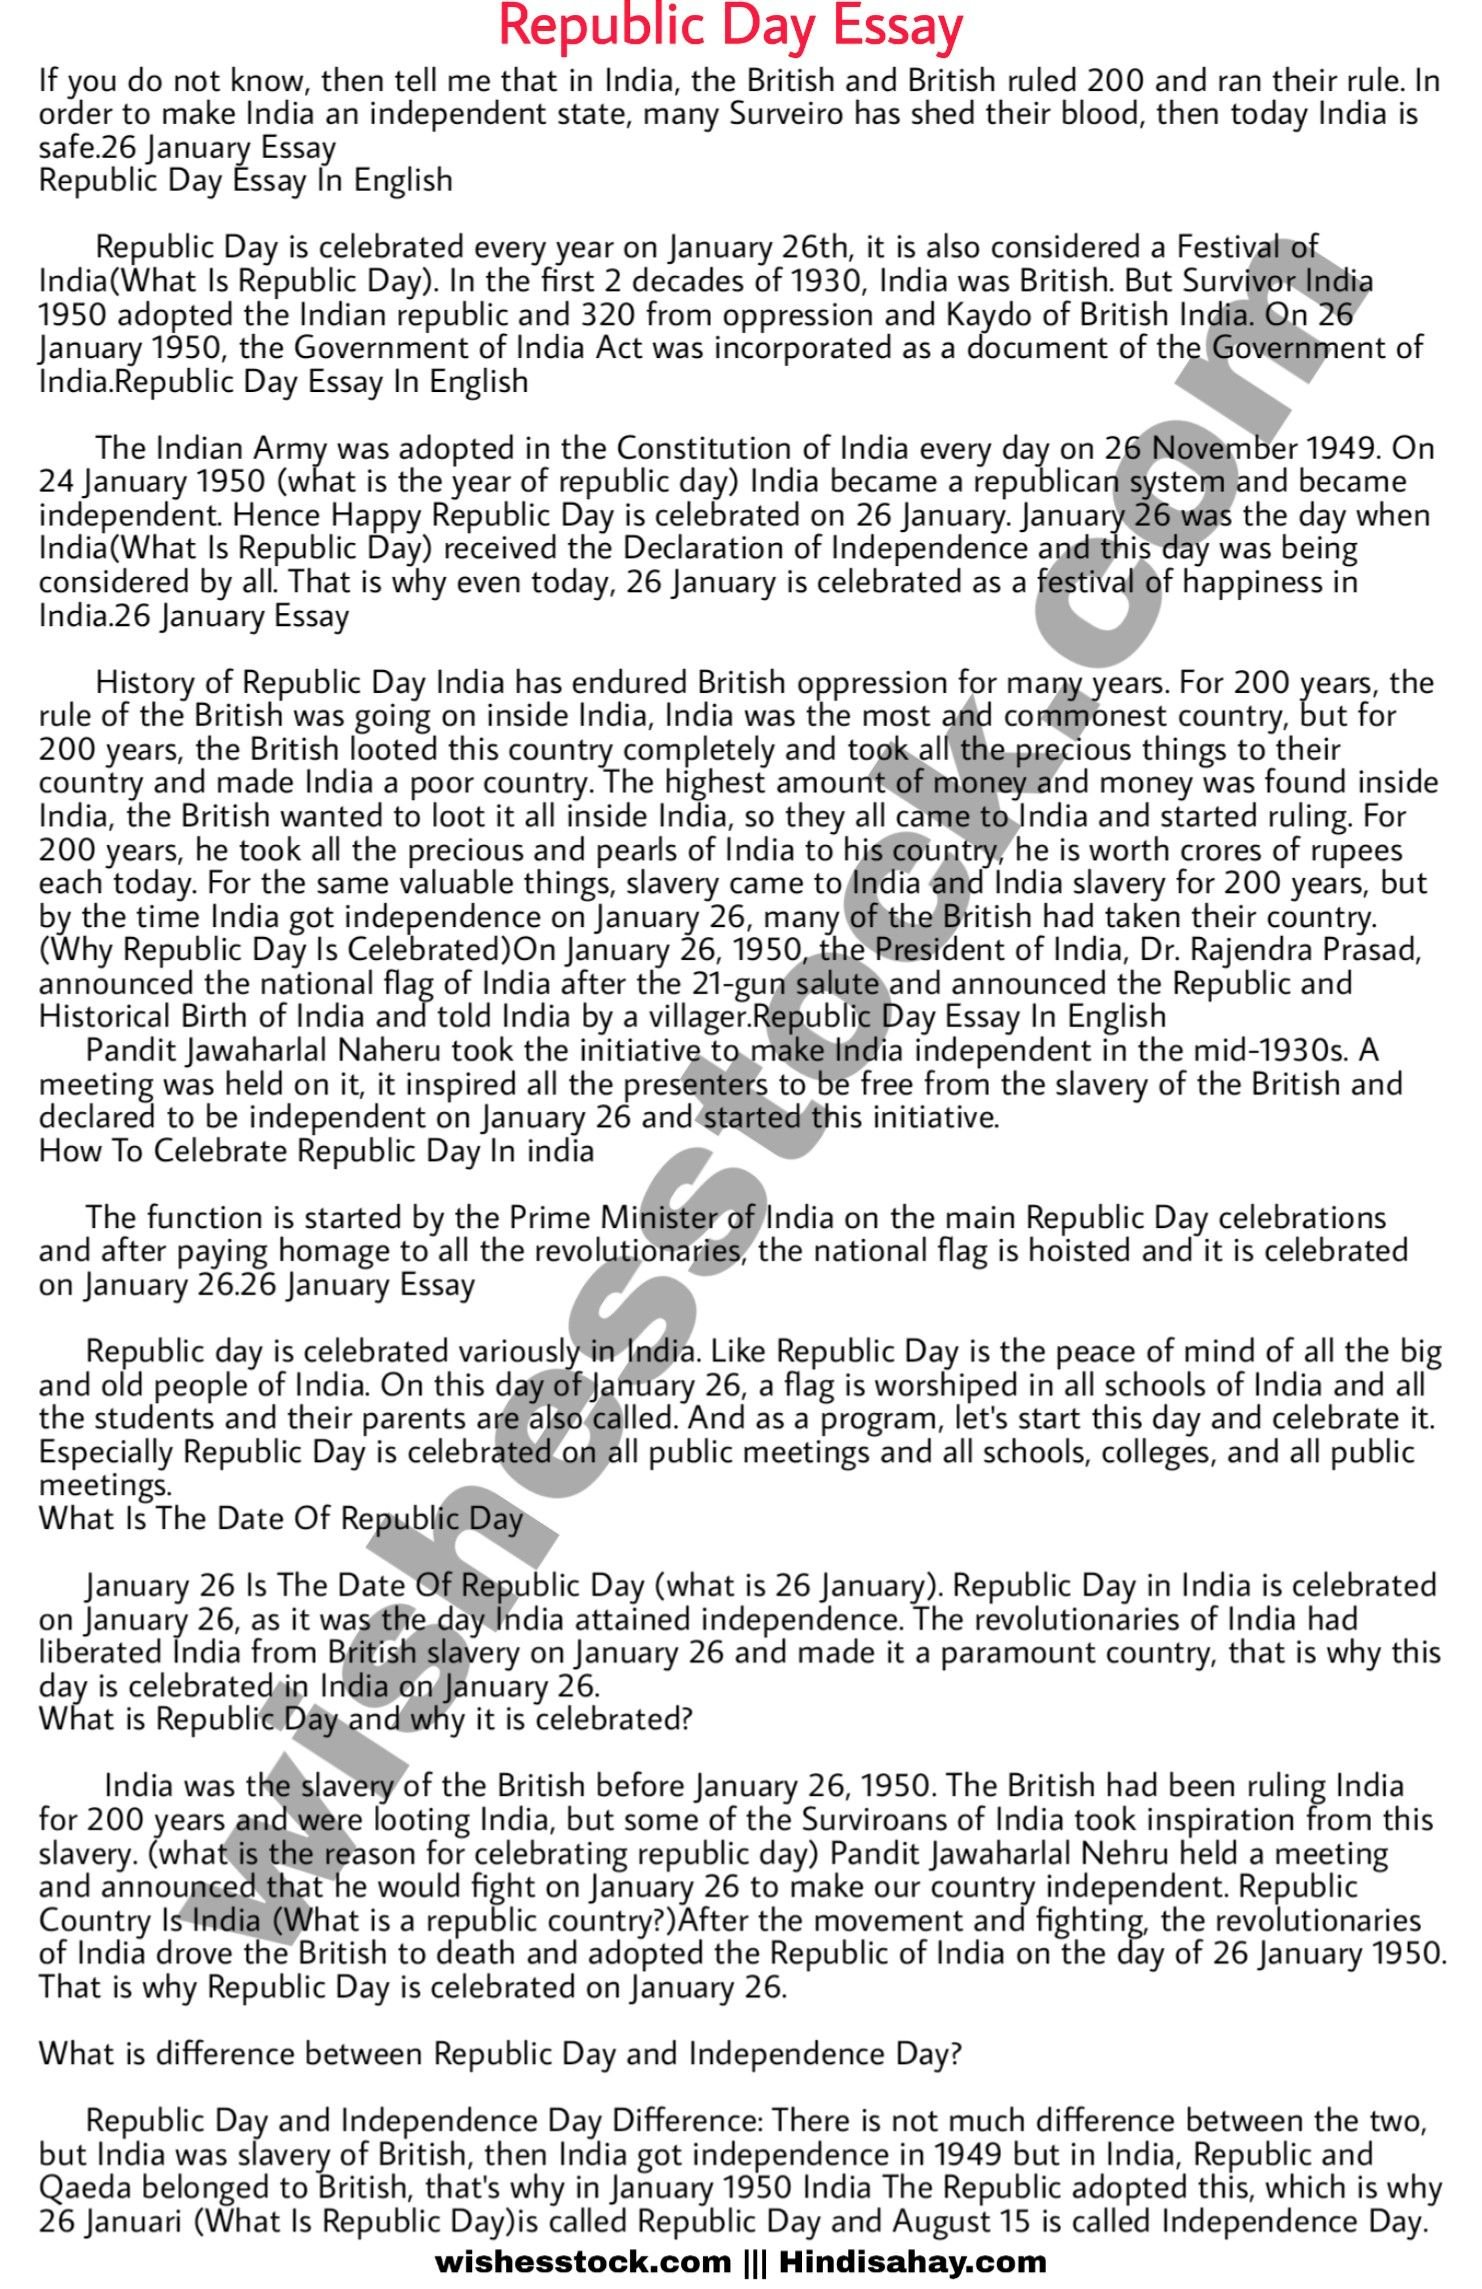 Republic Day Essay In English 26 January Speech Happy Birthday Wishes 9 11 9/11 Prompt Student Thesi Statement